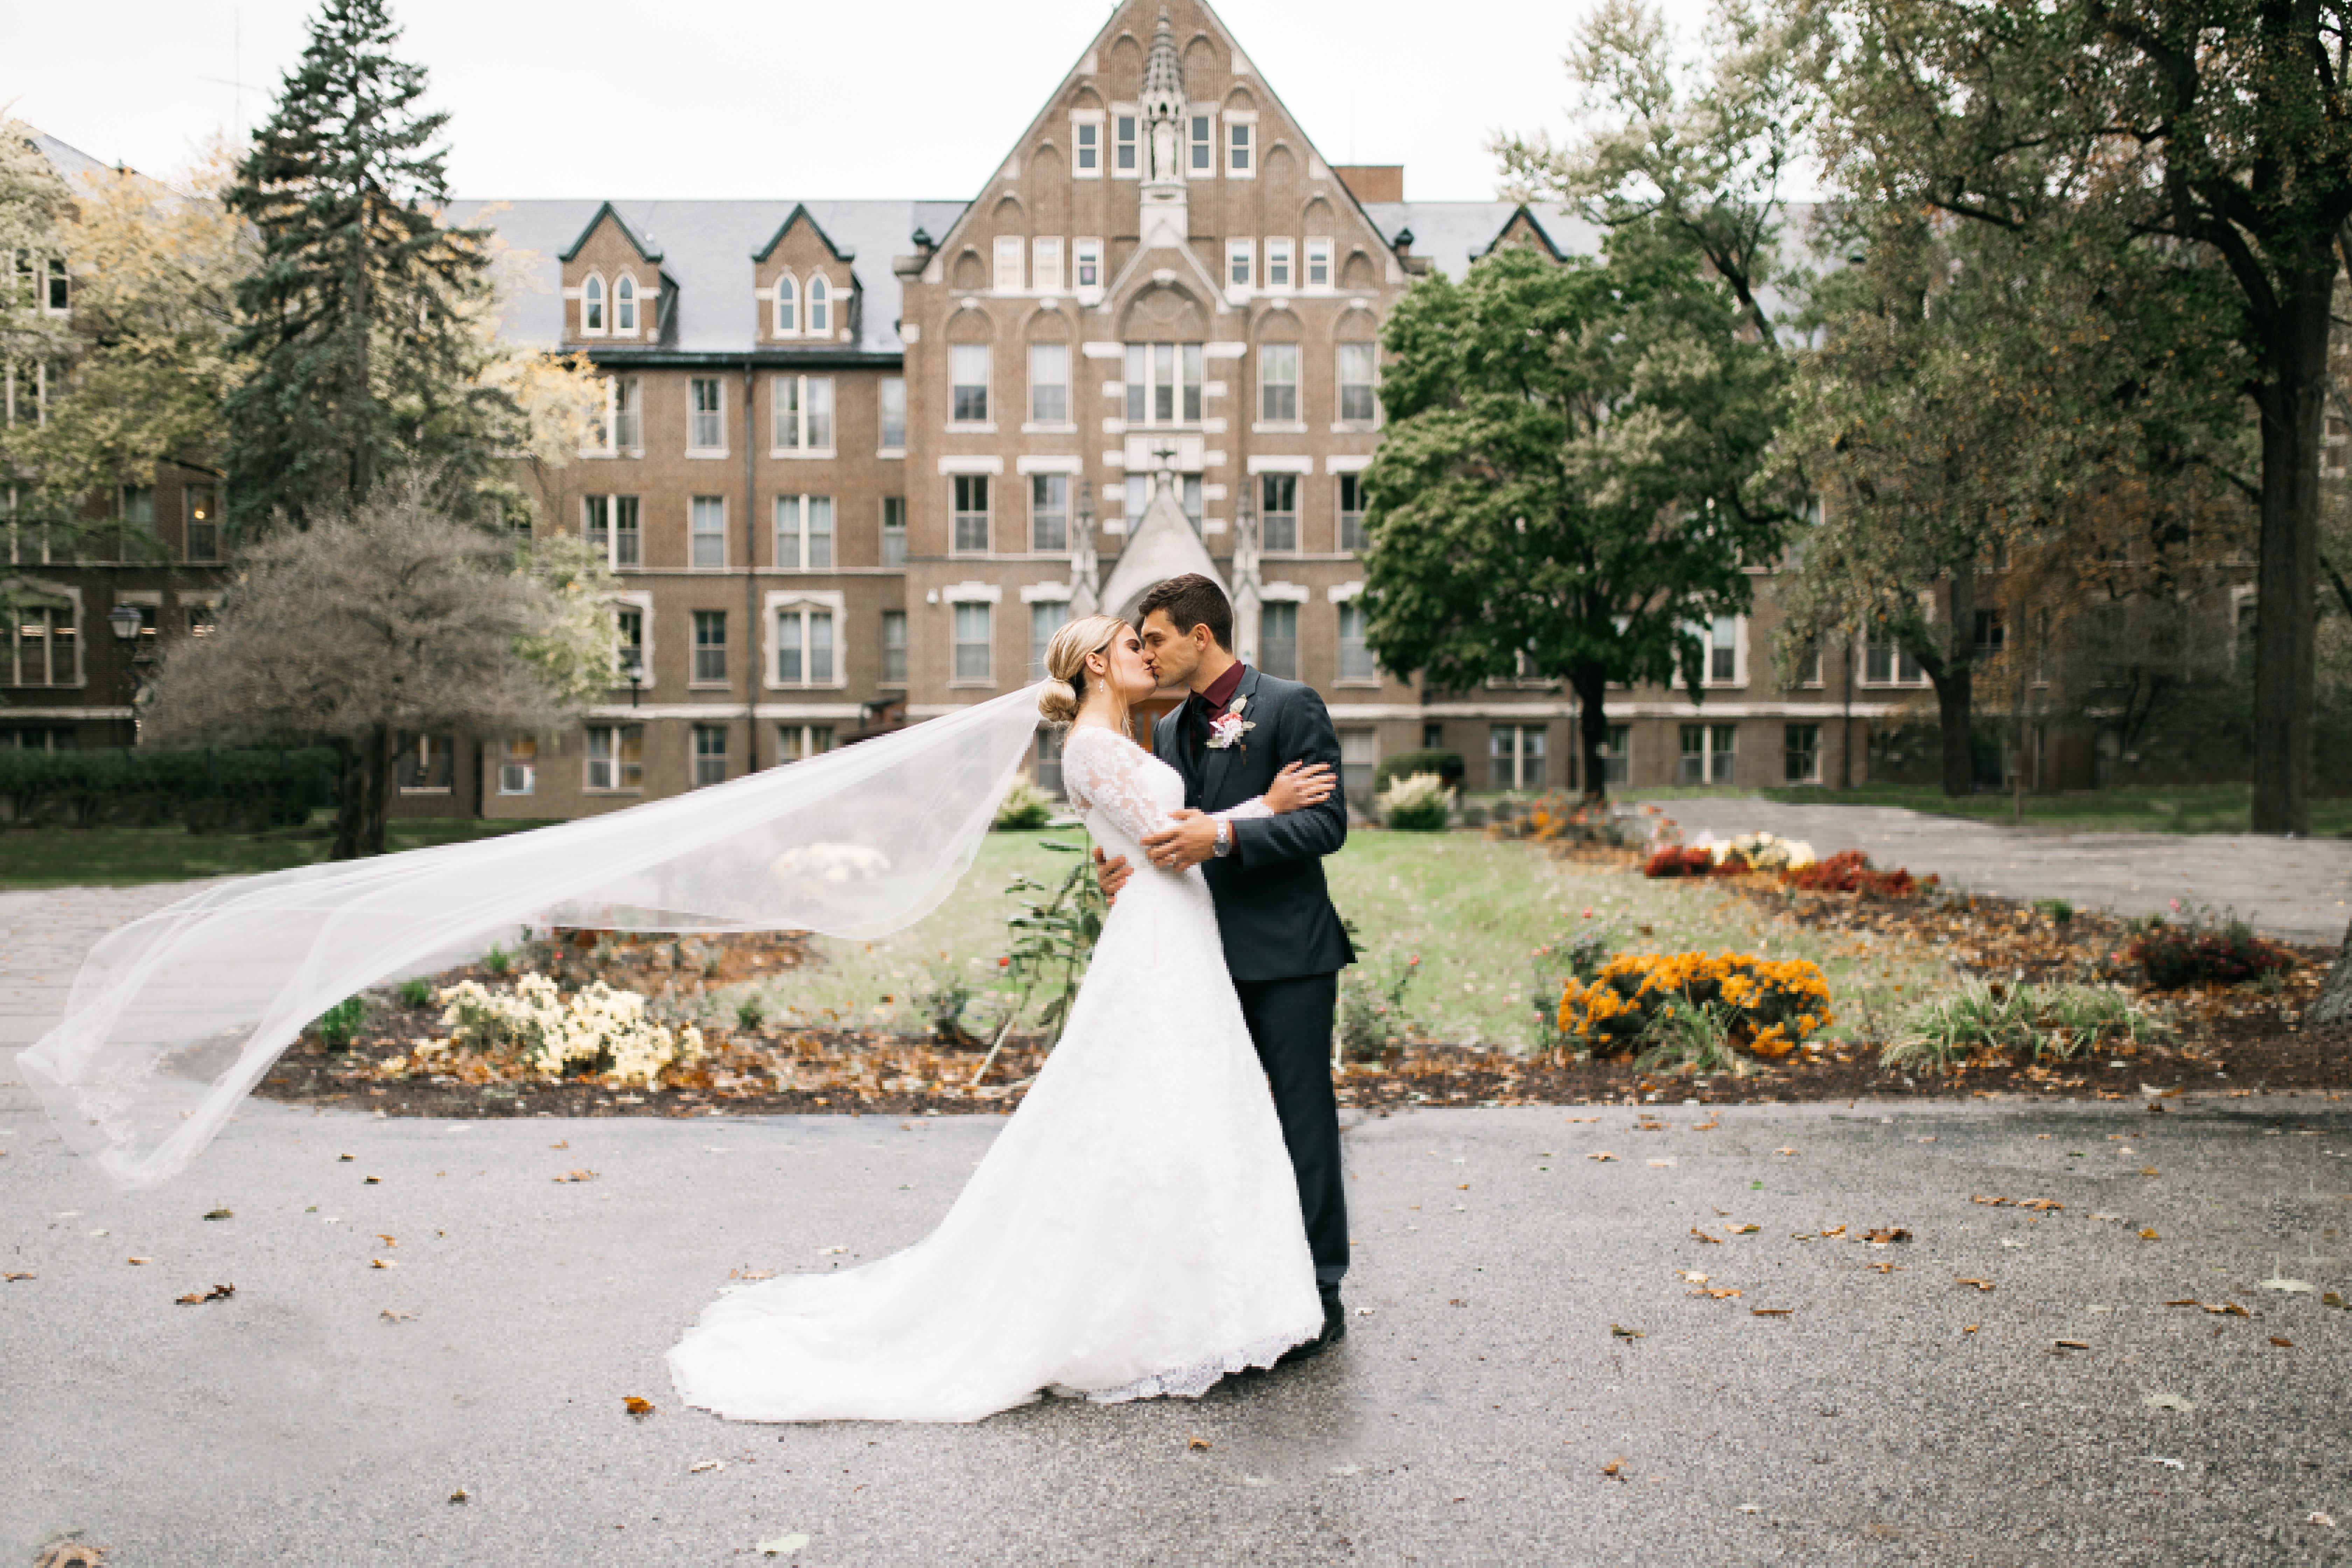 Bride with a cathedral length veil blowing in the wind     Insta-Worthy Veils